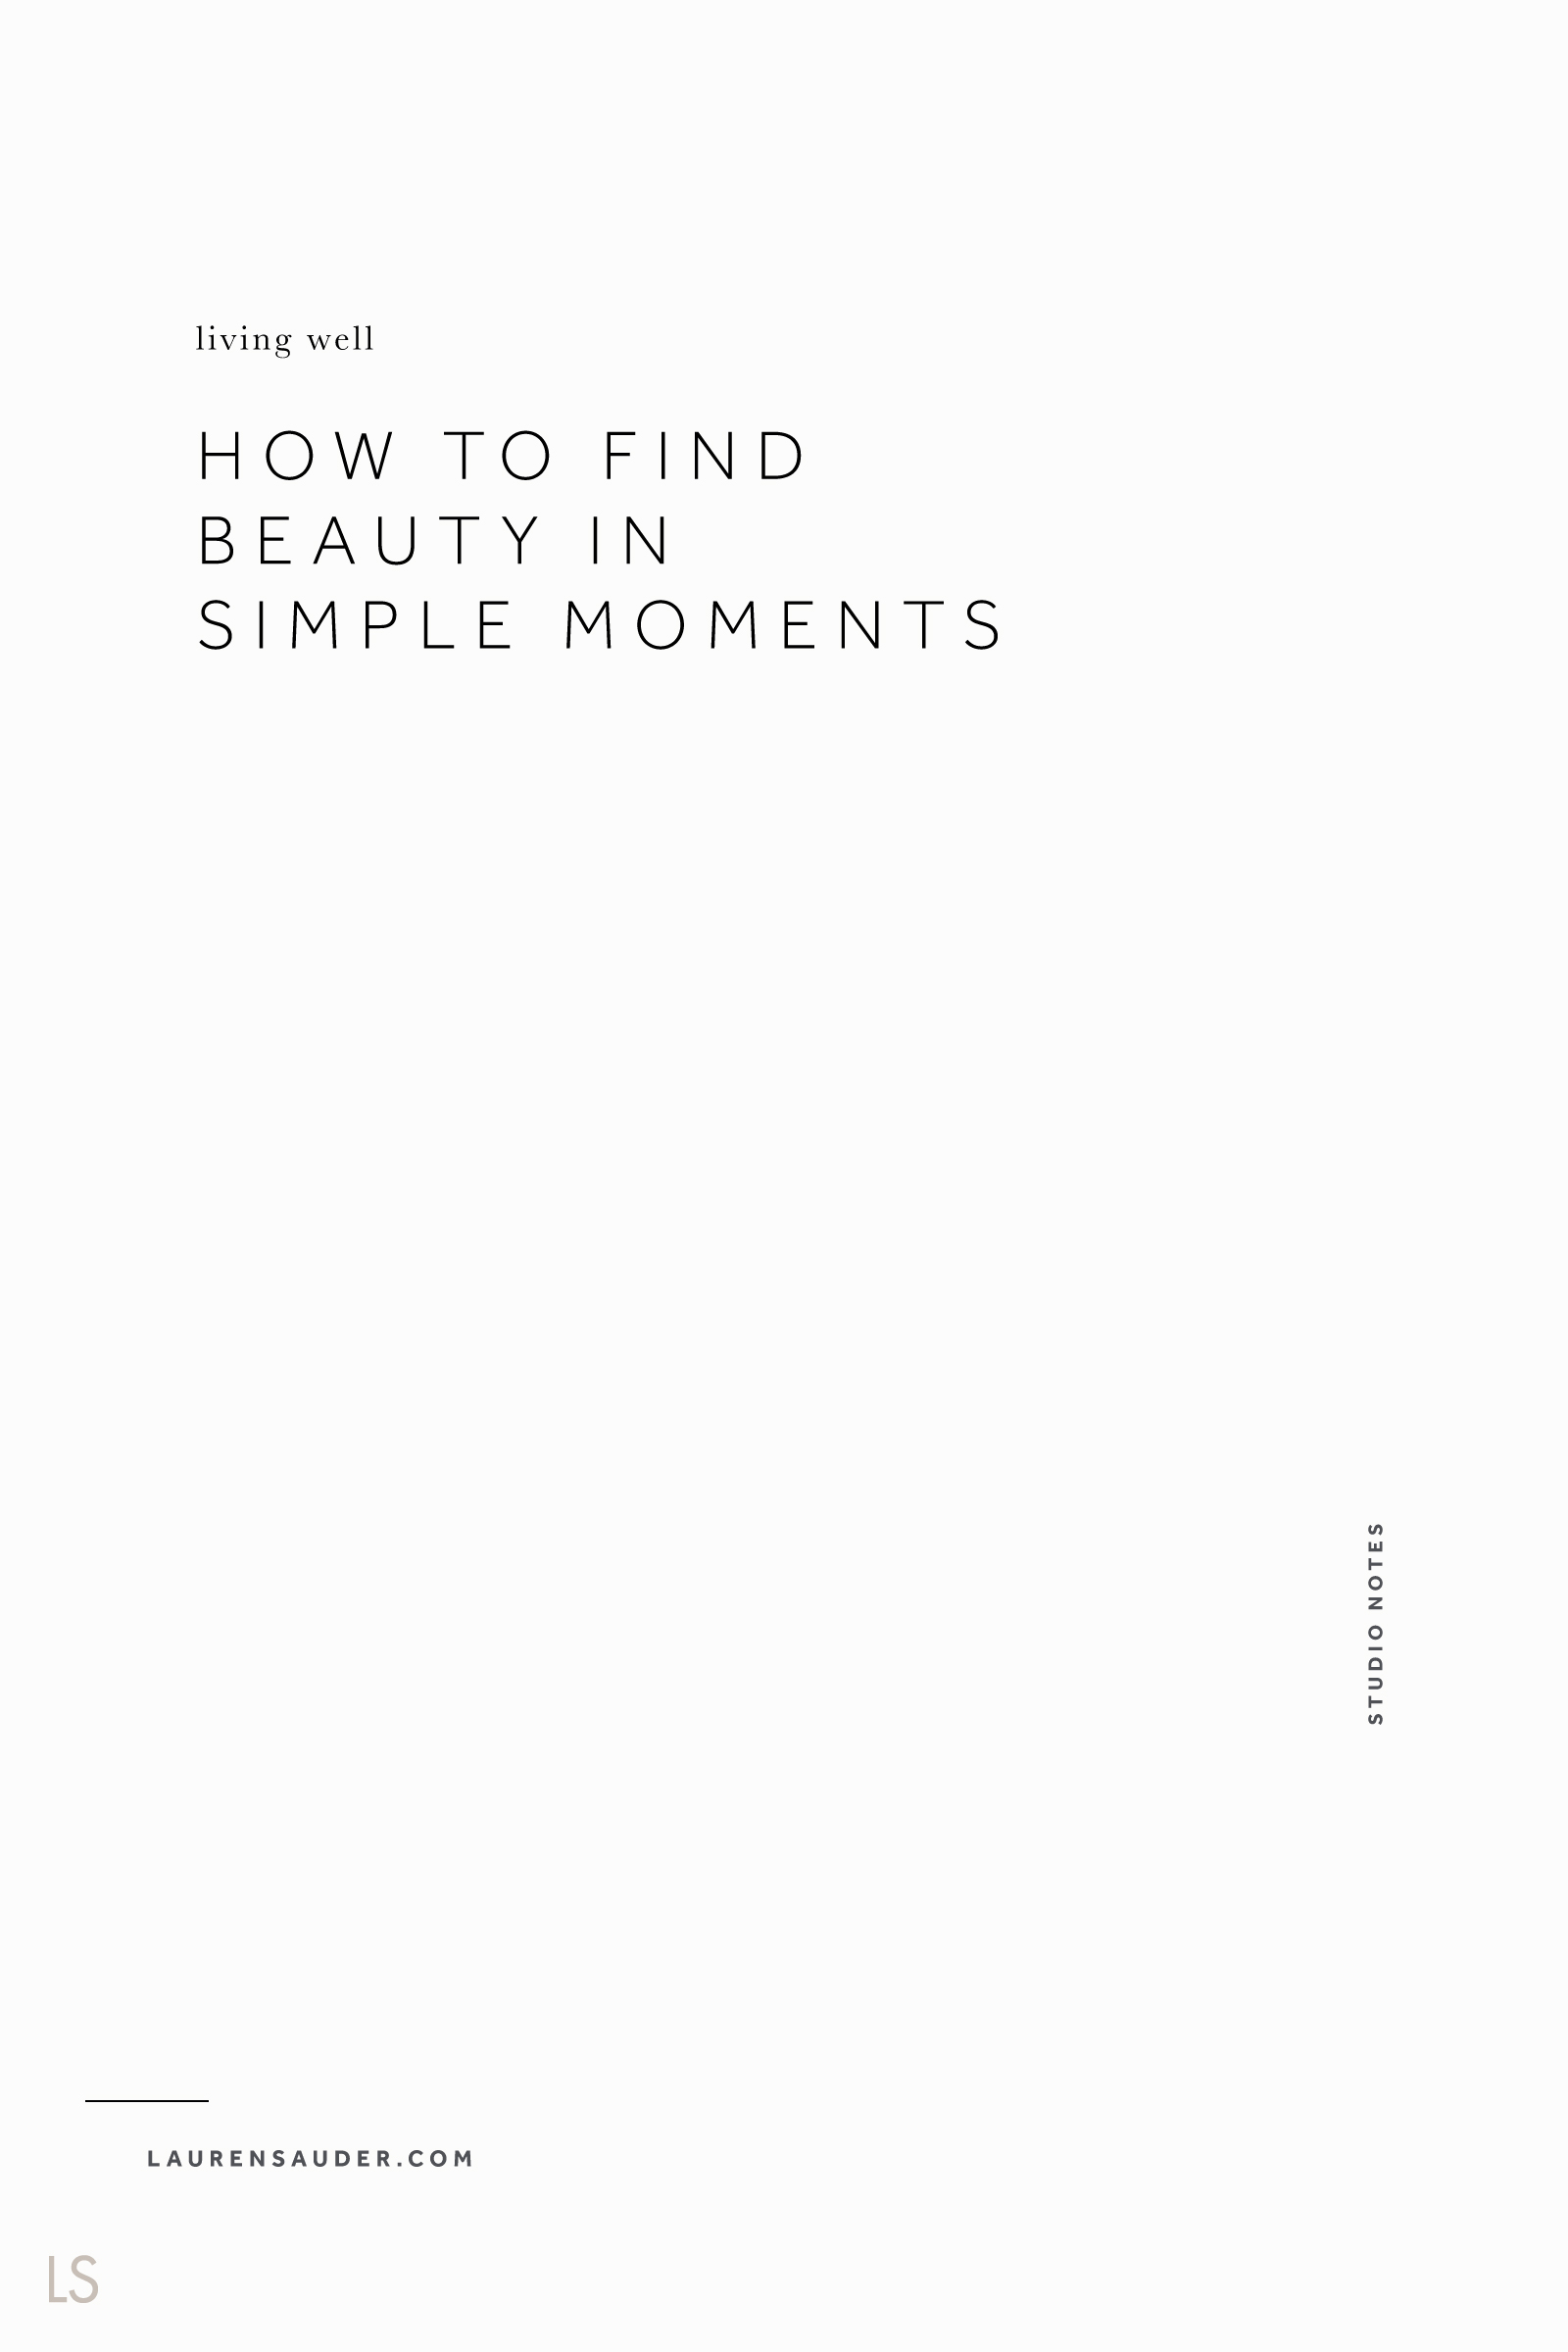 How To Find Beauty in Simple Moments by Lauren Sauder slow living, self care, well lived life, gratitude, minimalism